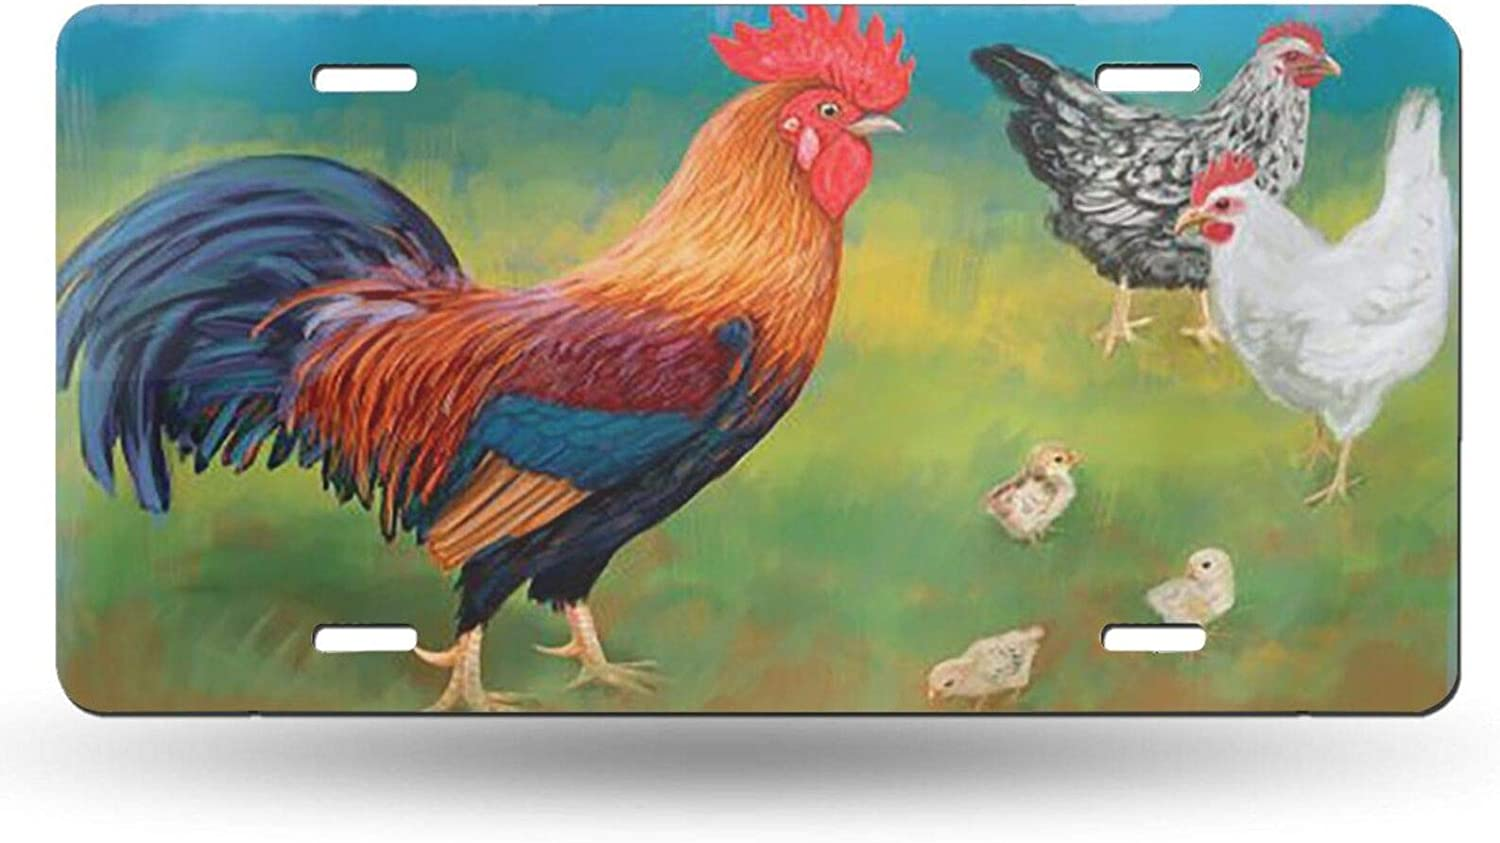 KiuLoam Rooster with Chickens 12x6 License Alum Cover Plate We OFFer at cheap prices Max 77% OFF Inch